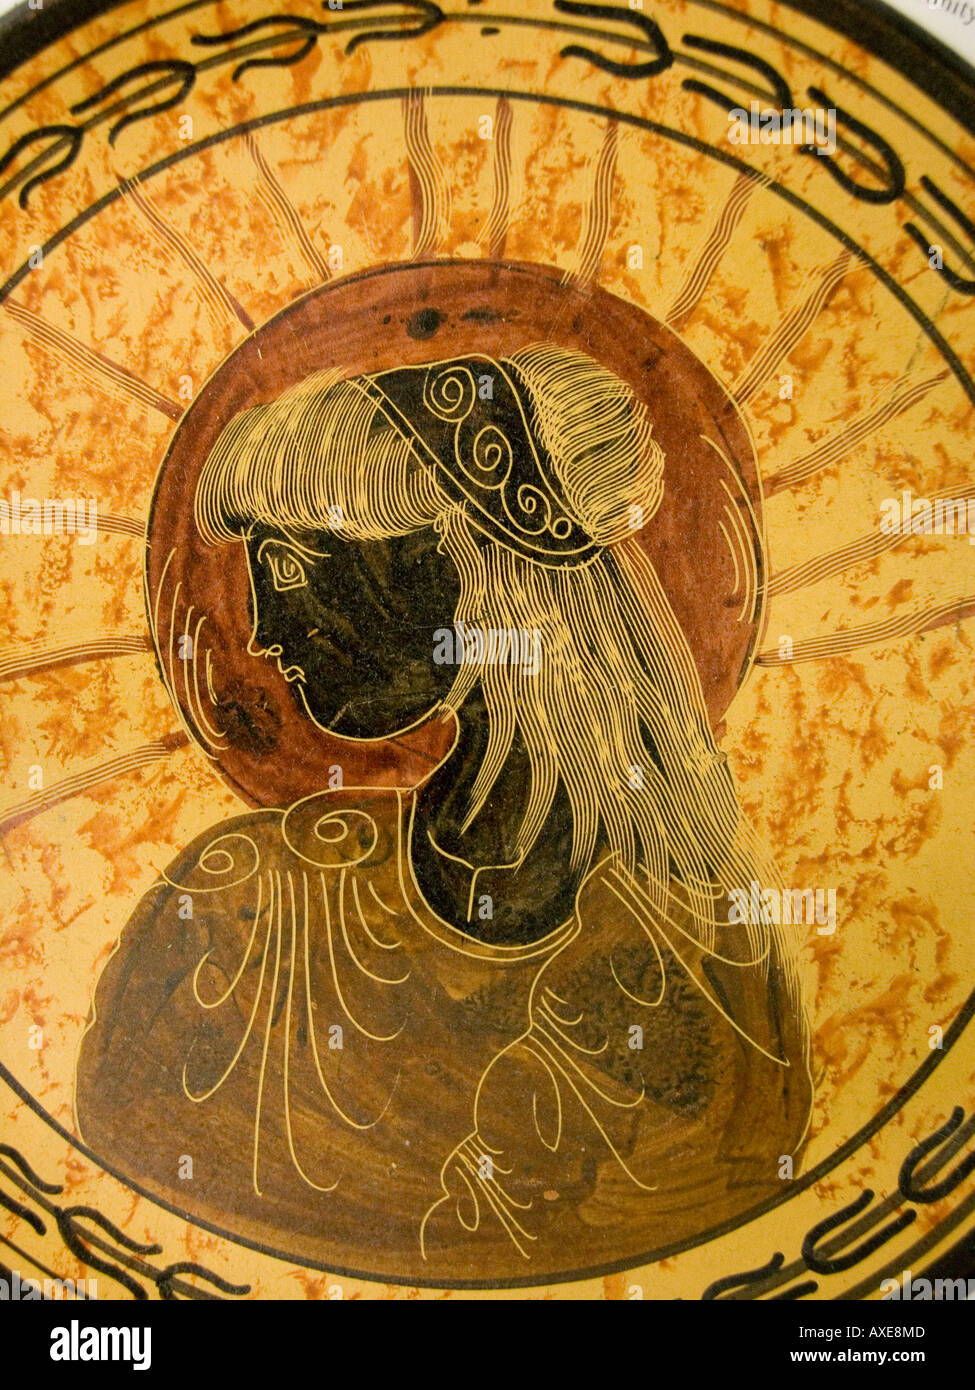 Demeter stock photos demeter stock images alamy greek art goddess demeter stock image buycottarizona Image collections